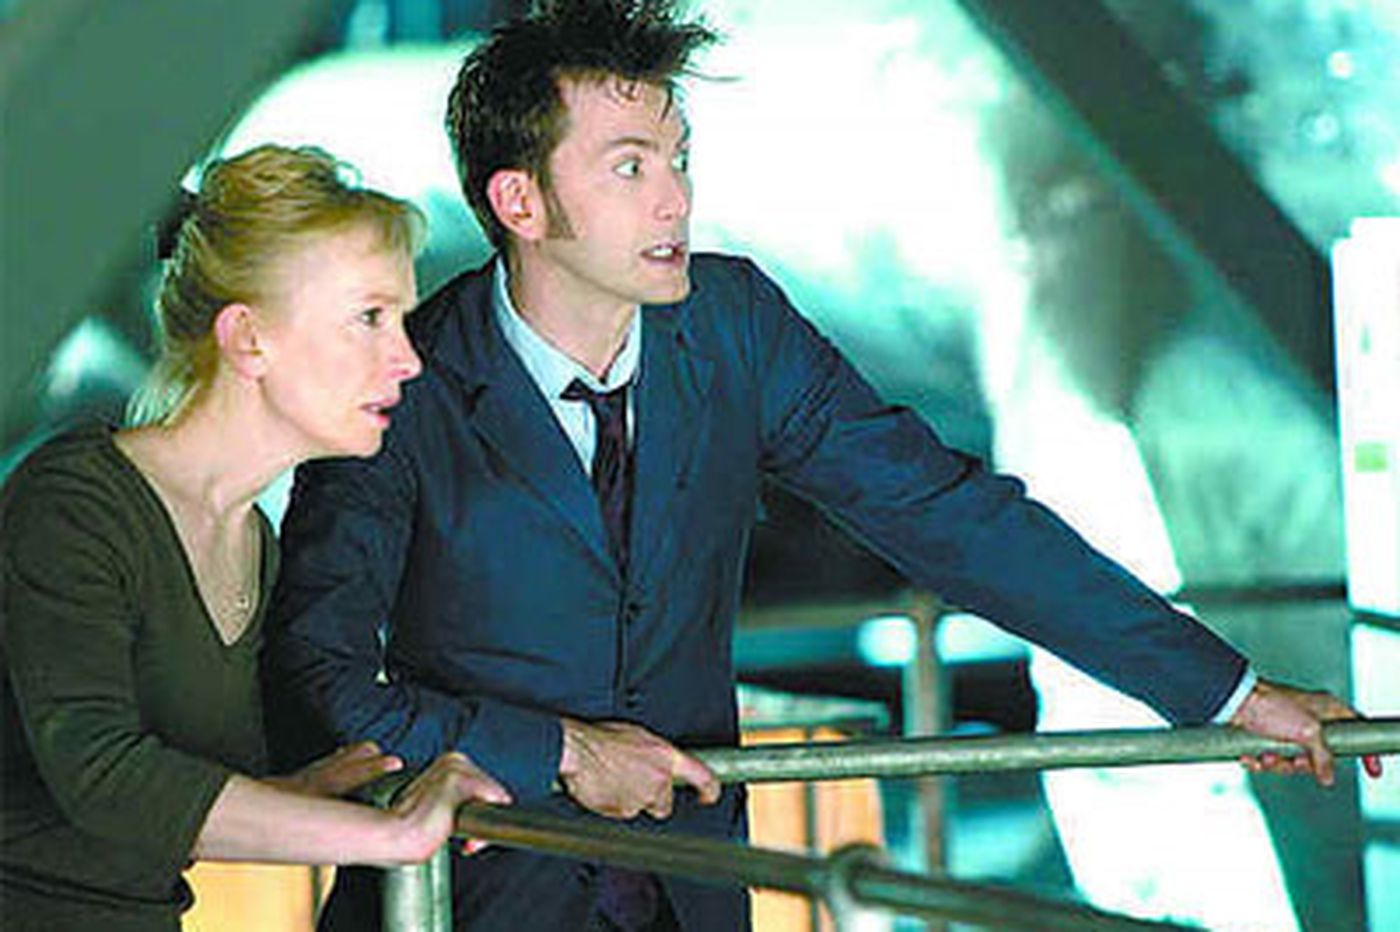 Ellen Gray: This Doctor is out: David Tennant departs after 4 years as 'Doctor Who'